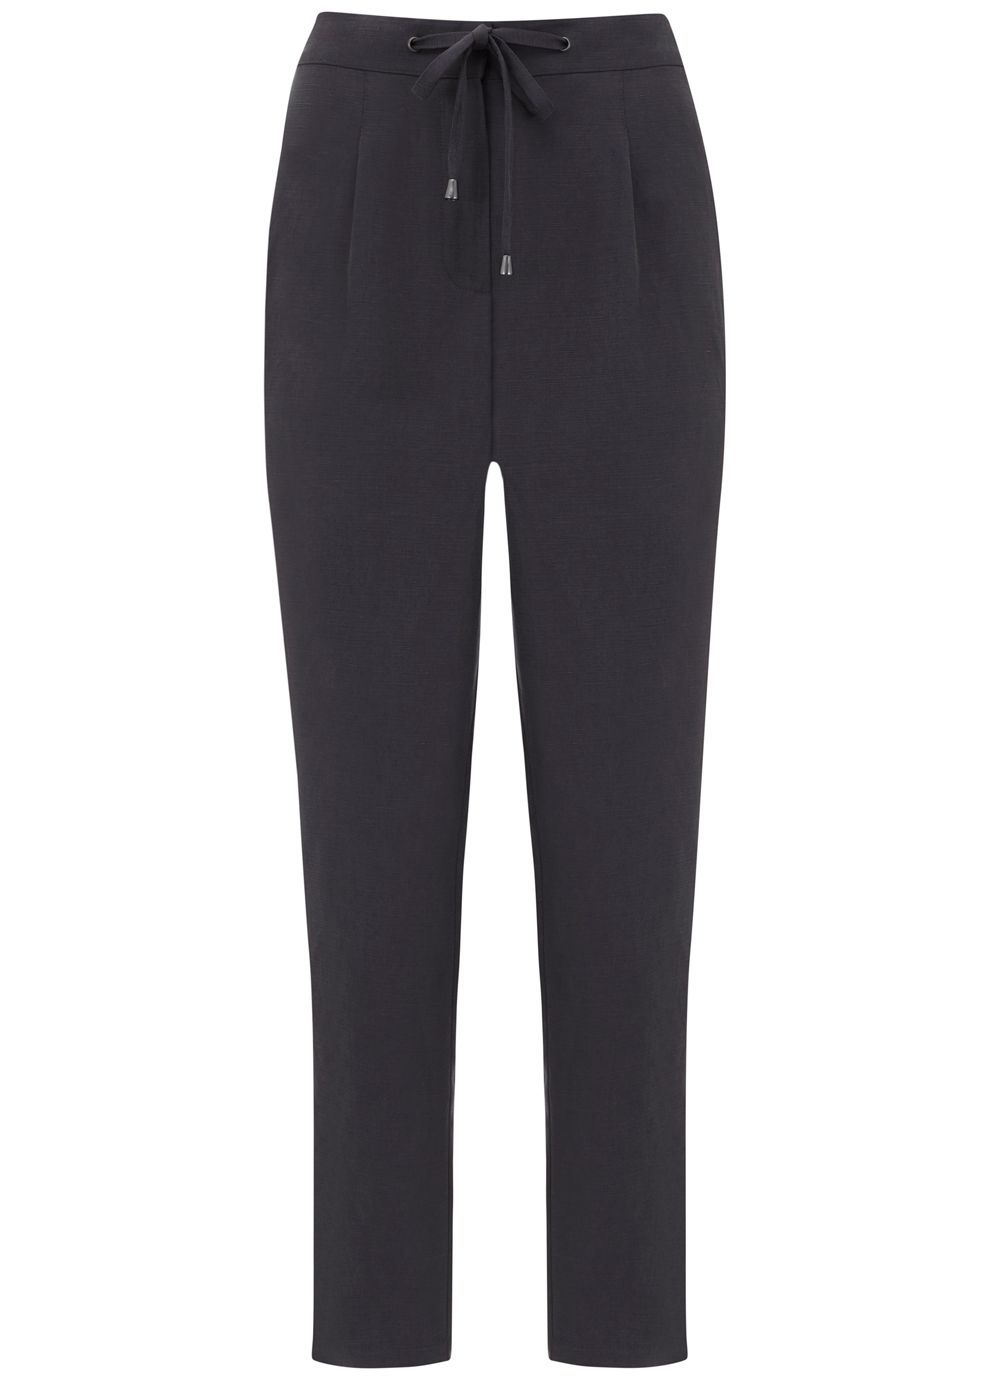 Smoke Sports Pant, Grey - length: standard; pattern: plain; waist: high rise; predominant colour: charcoal; occasions: work; fibres: wool - 100%; fit: slim leg; pattern type: fabric; texture group: woven light midweight; style: standard; season: s/s 2016; wardrobe: basic